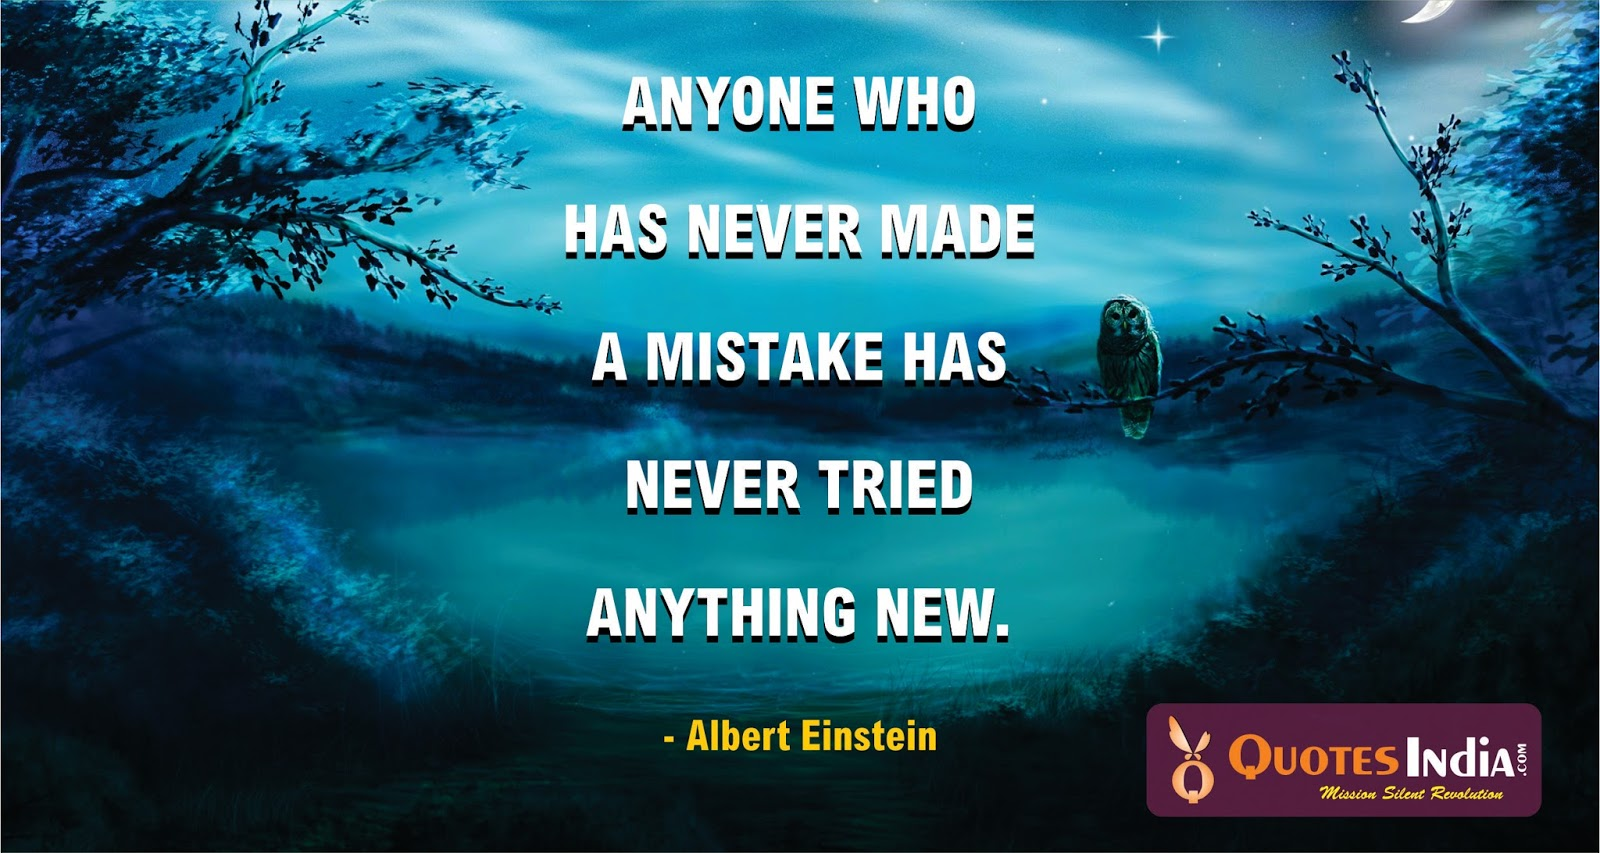 anyone who has never made mistake has never tried anything new I am currently studying certificate 3 in graphic design production i have always had an interest in art, photography but have had no formal experience or training graphic design is completely new to me and i'm just beginning to learn how to use forums, blogs and all the graphic design software.